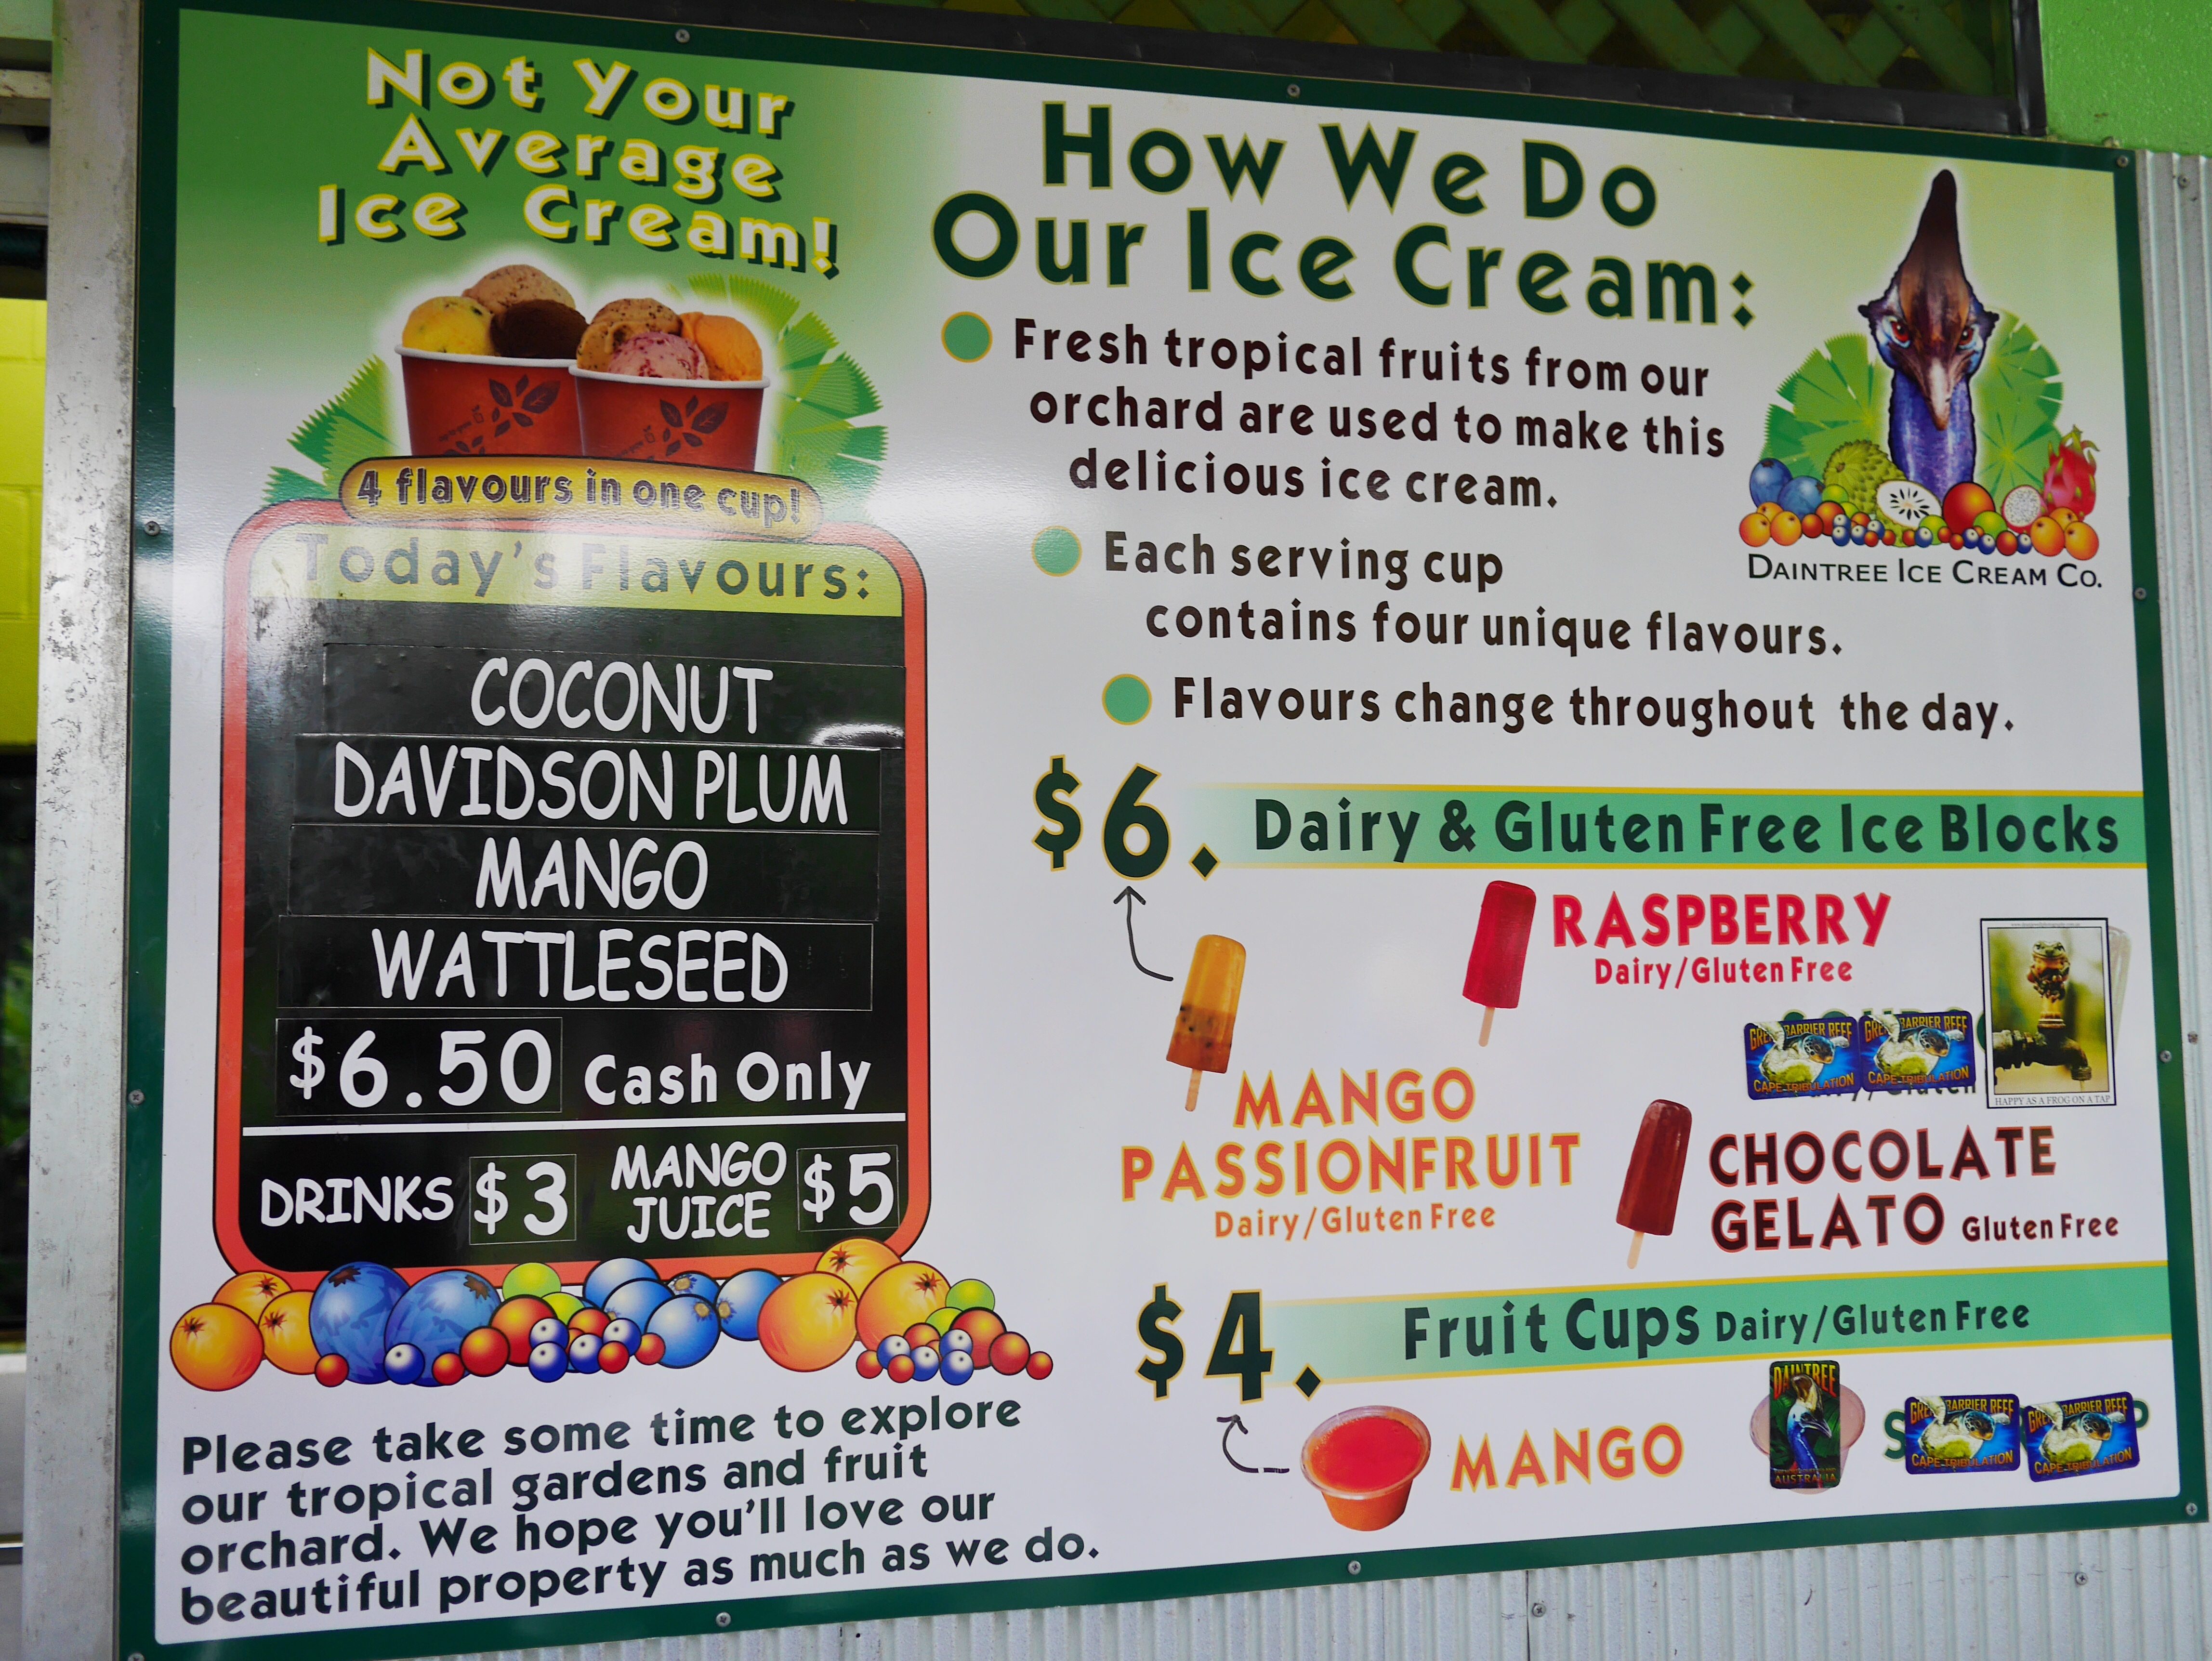 Daintree Ice Cream Factory